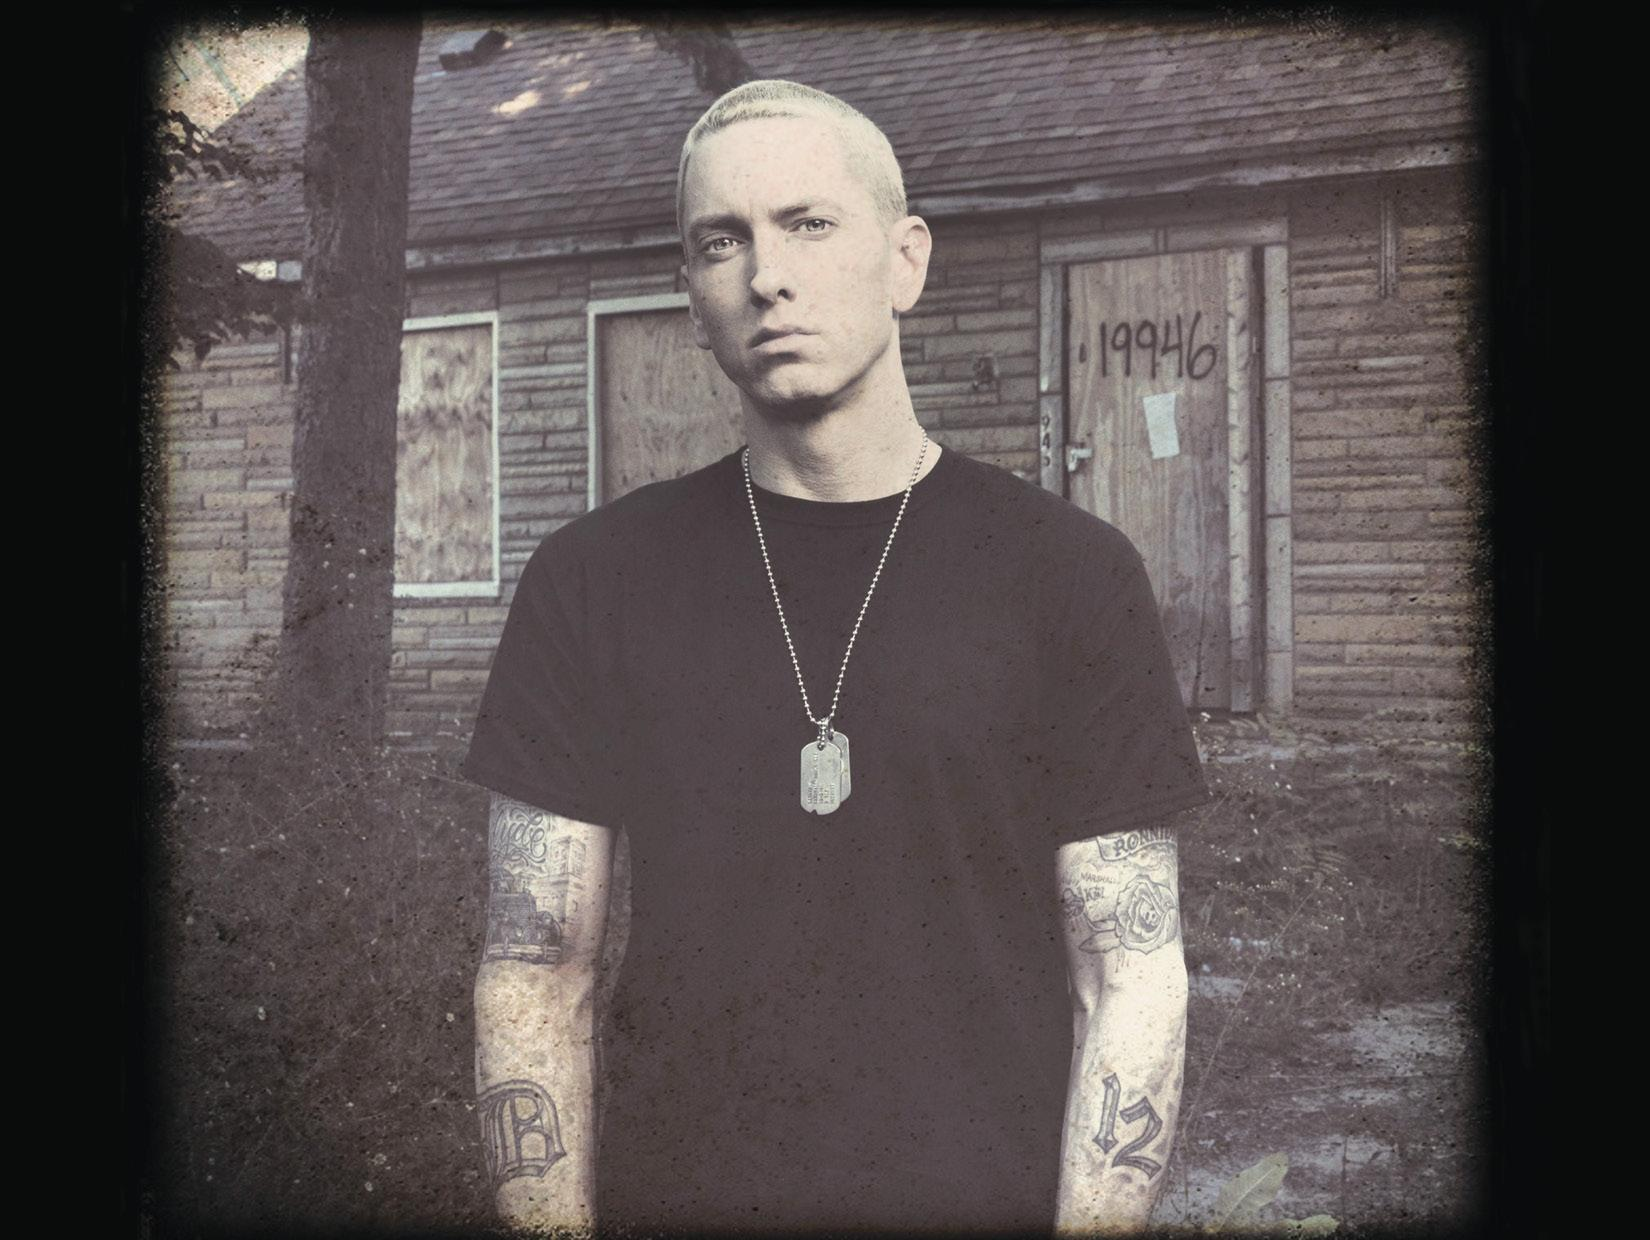 Marshall mathers lp 2 songs download.